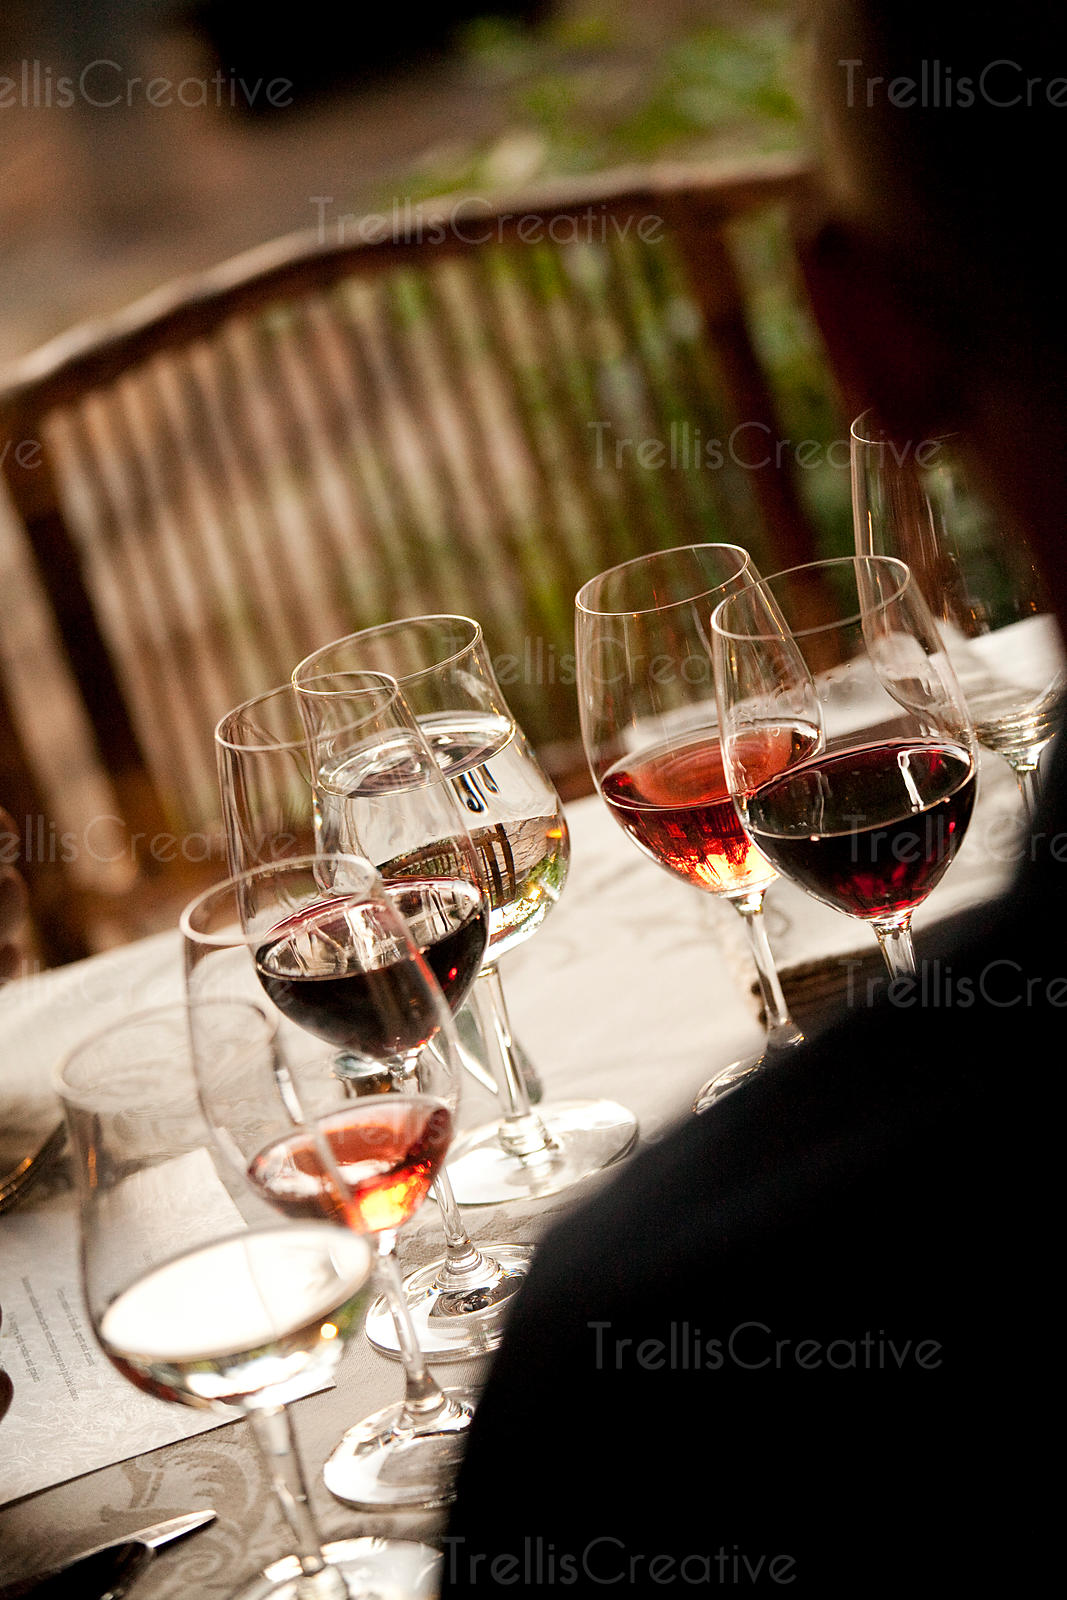 Looking over a guest's shoulder at wine glasses on a table